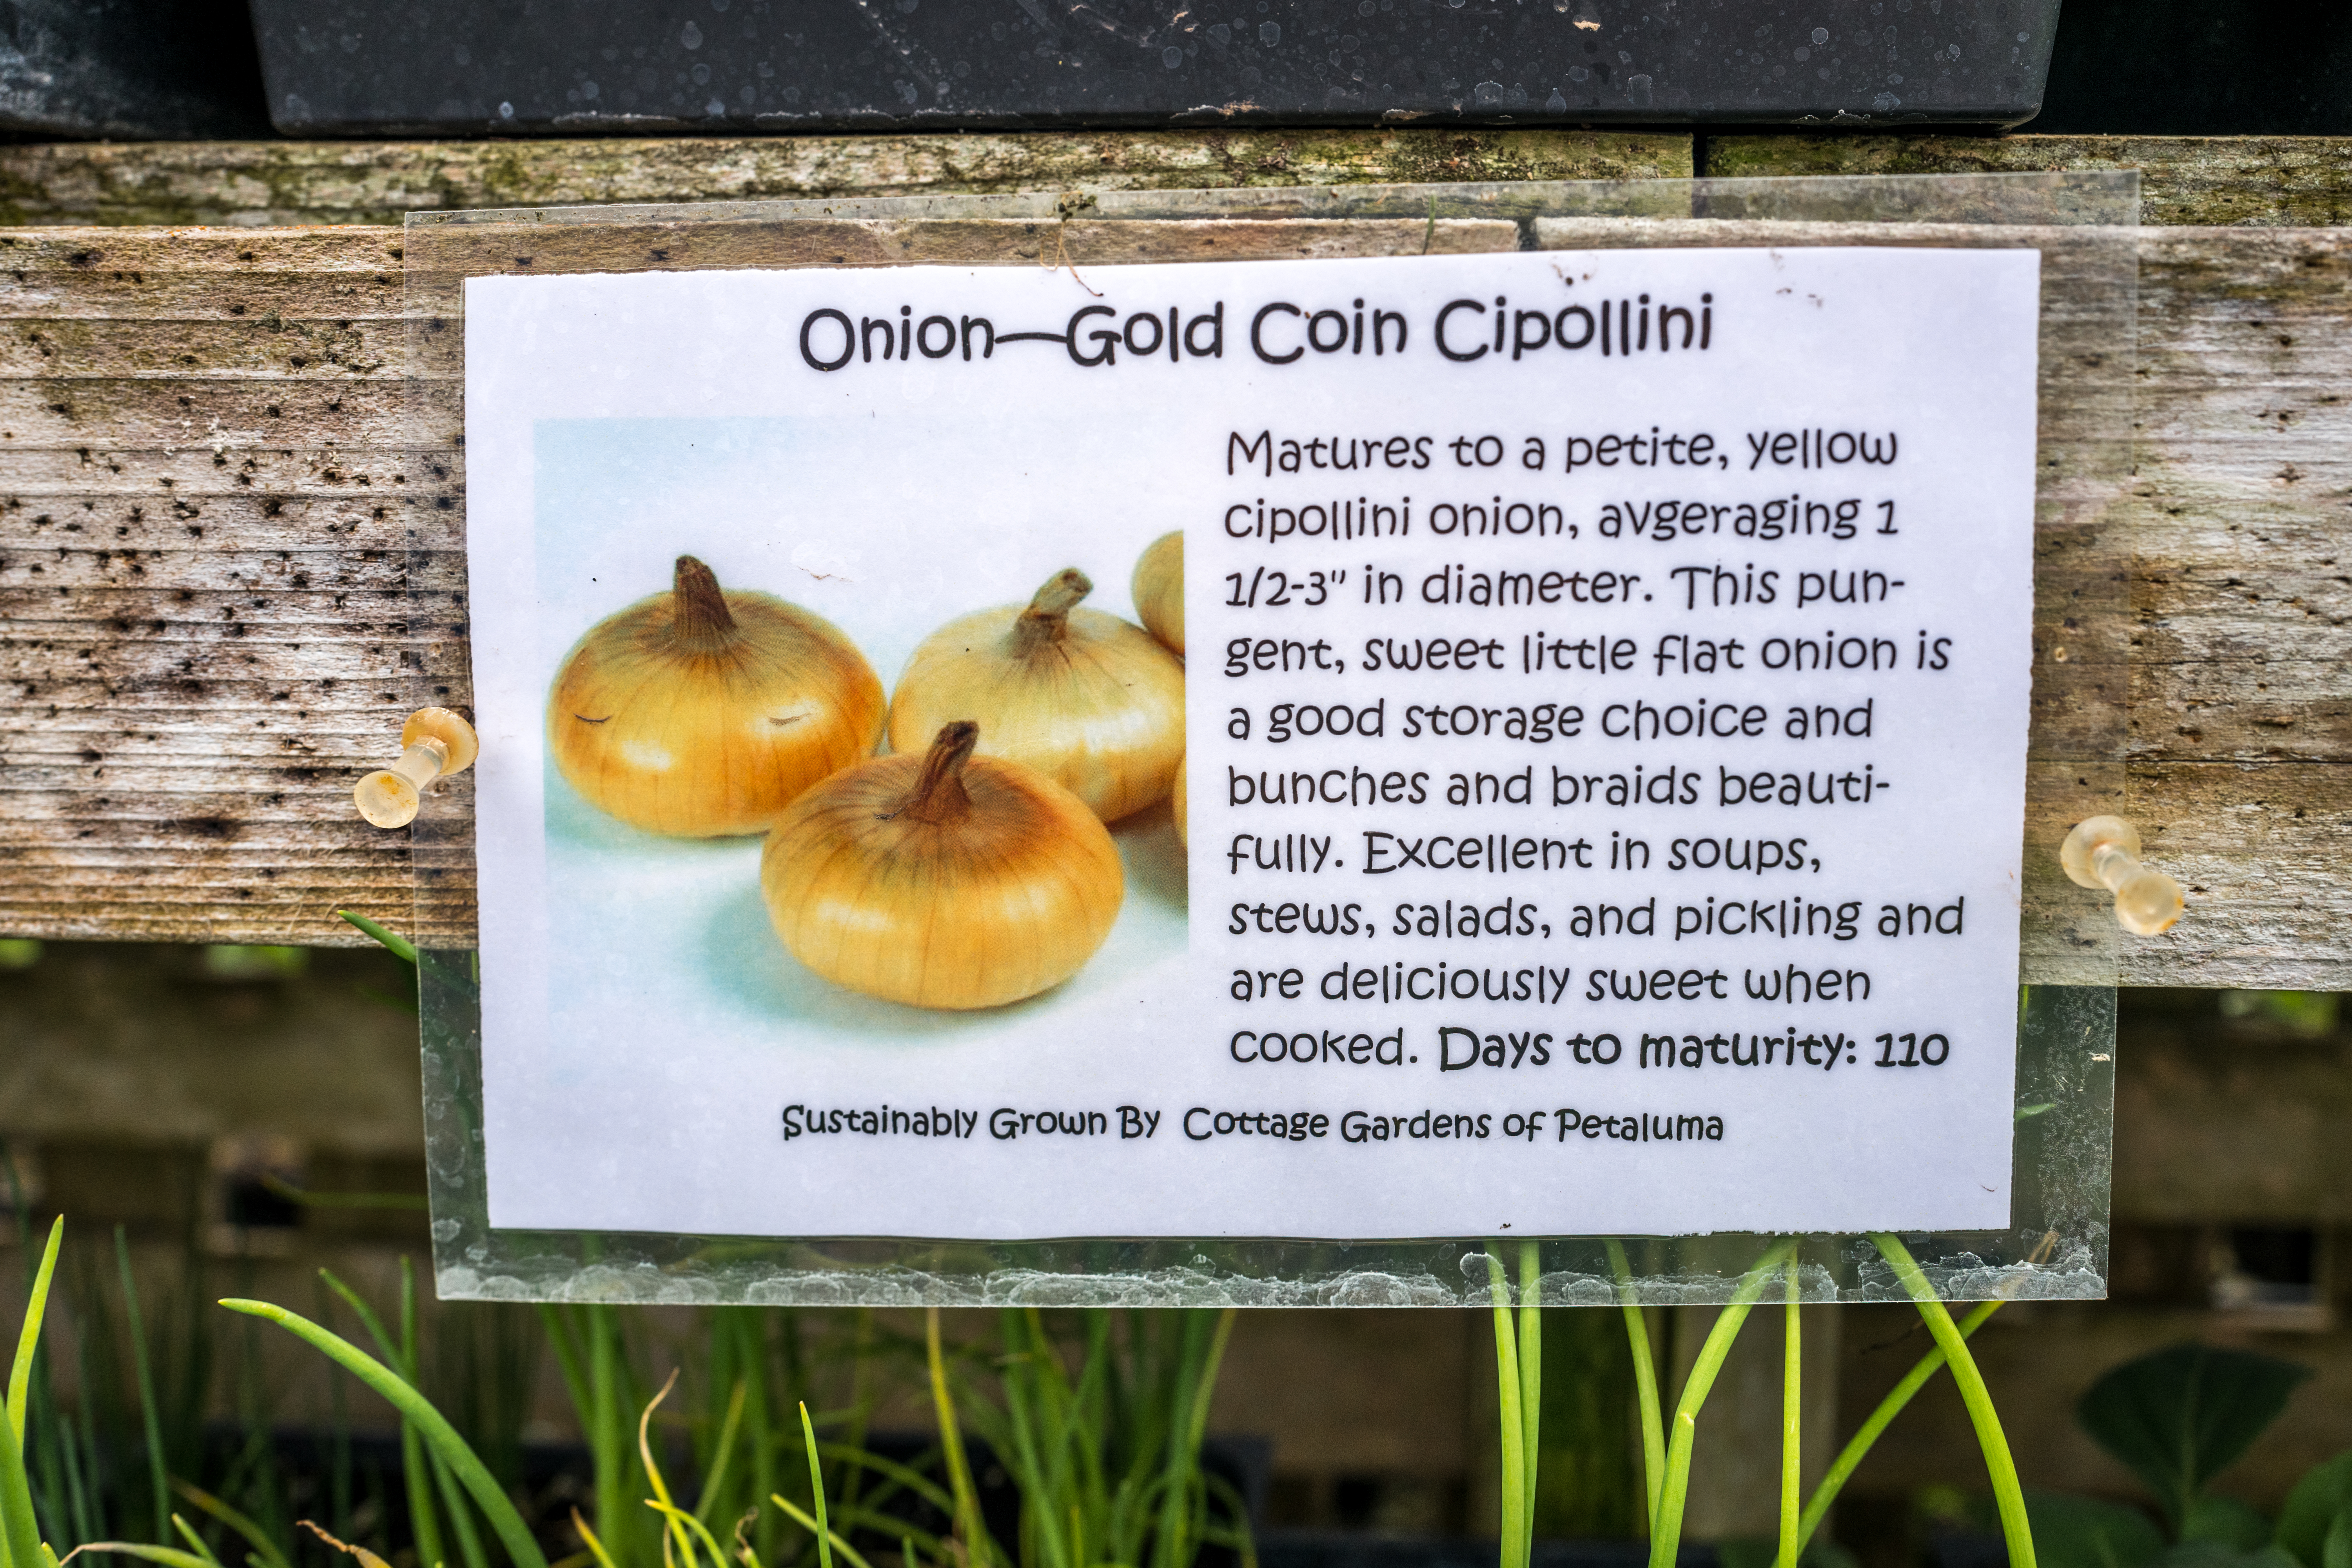 I Also Bought A Six Pack Of Gold Coin Cipollini Onions Which We Will Love,  In About 110 Days, According To The Label. Arenu0027t They Irresistible?